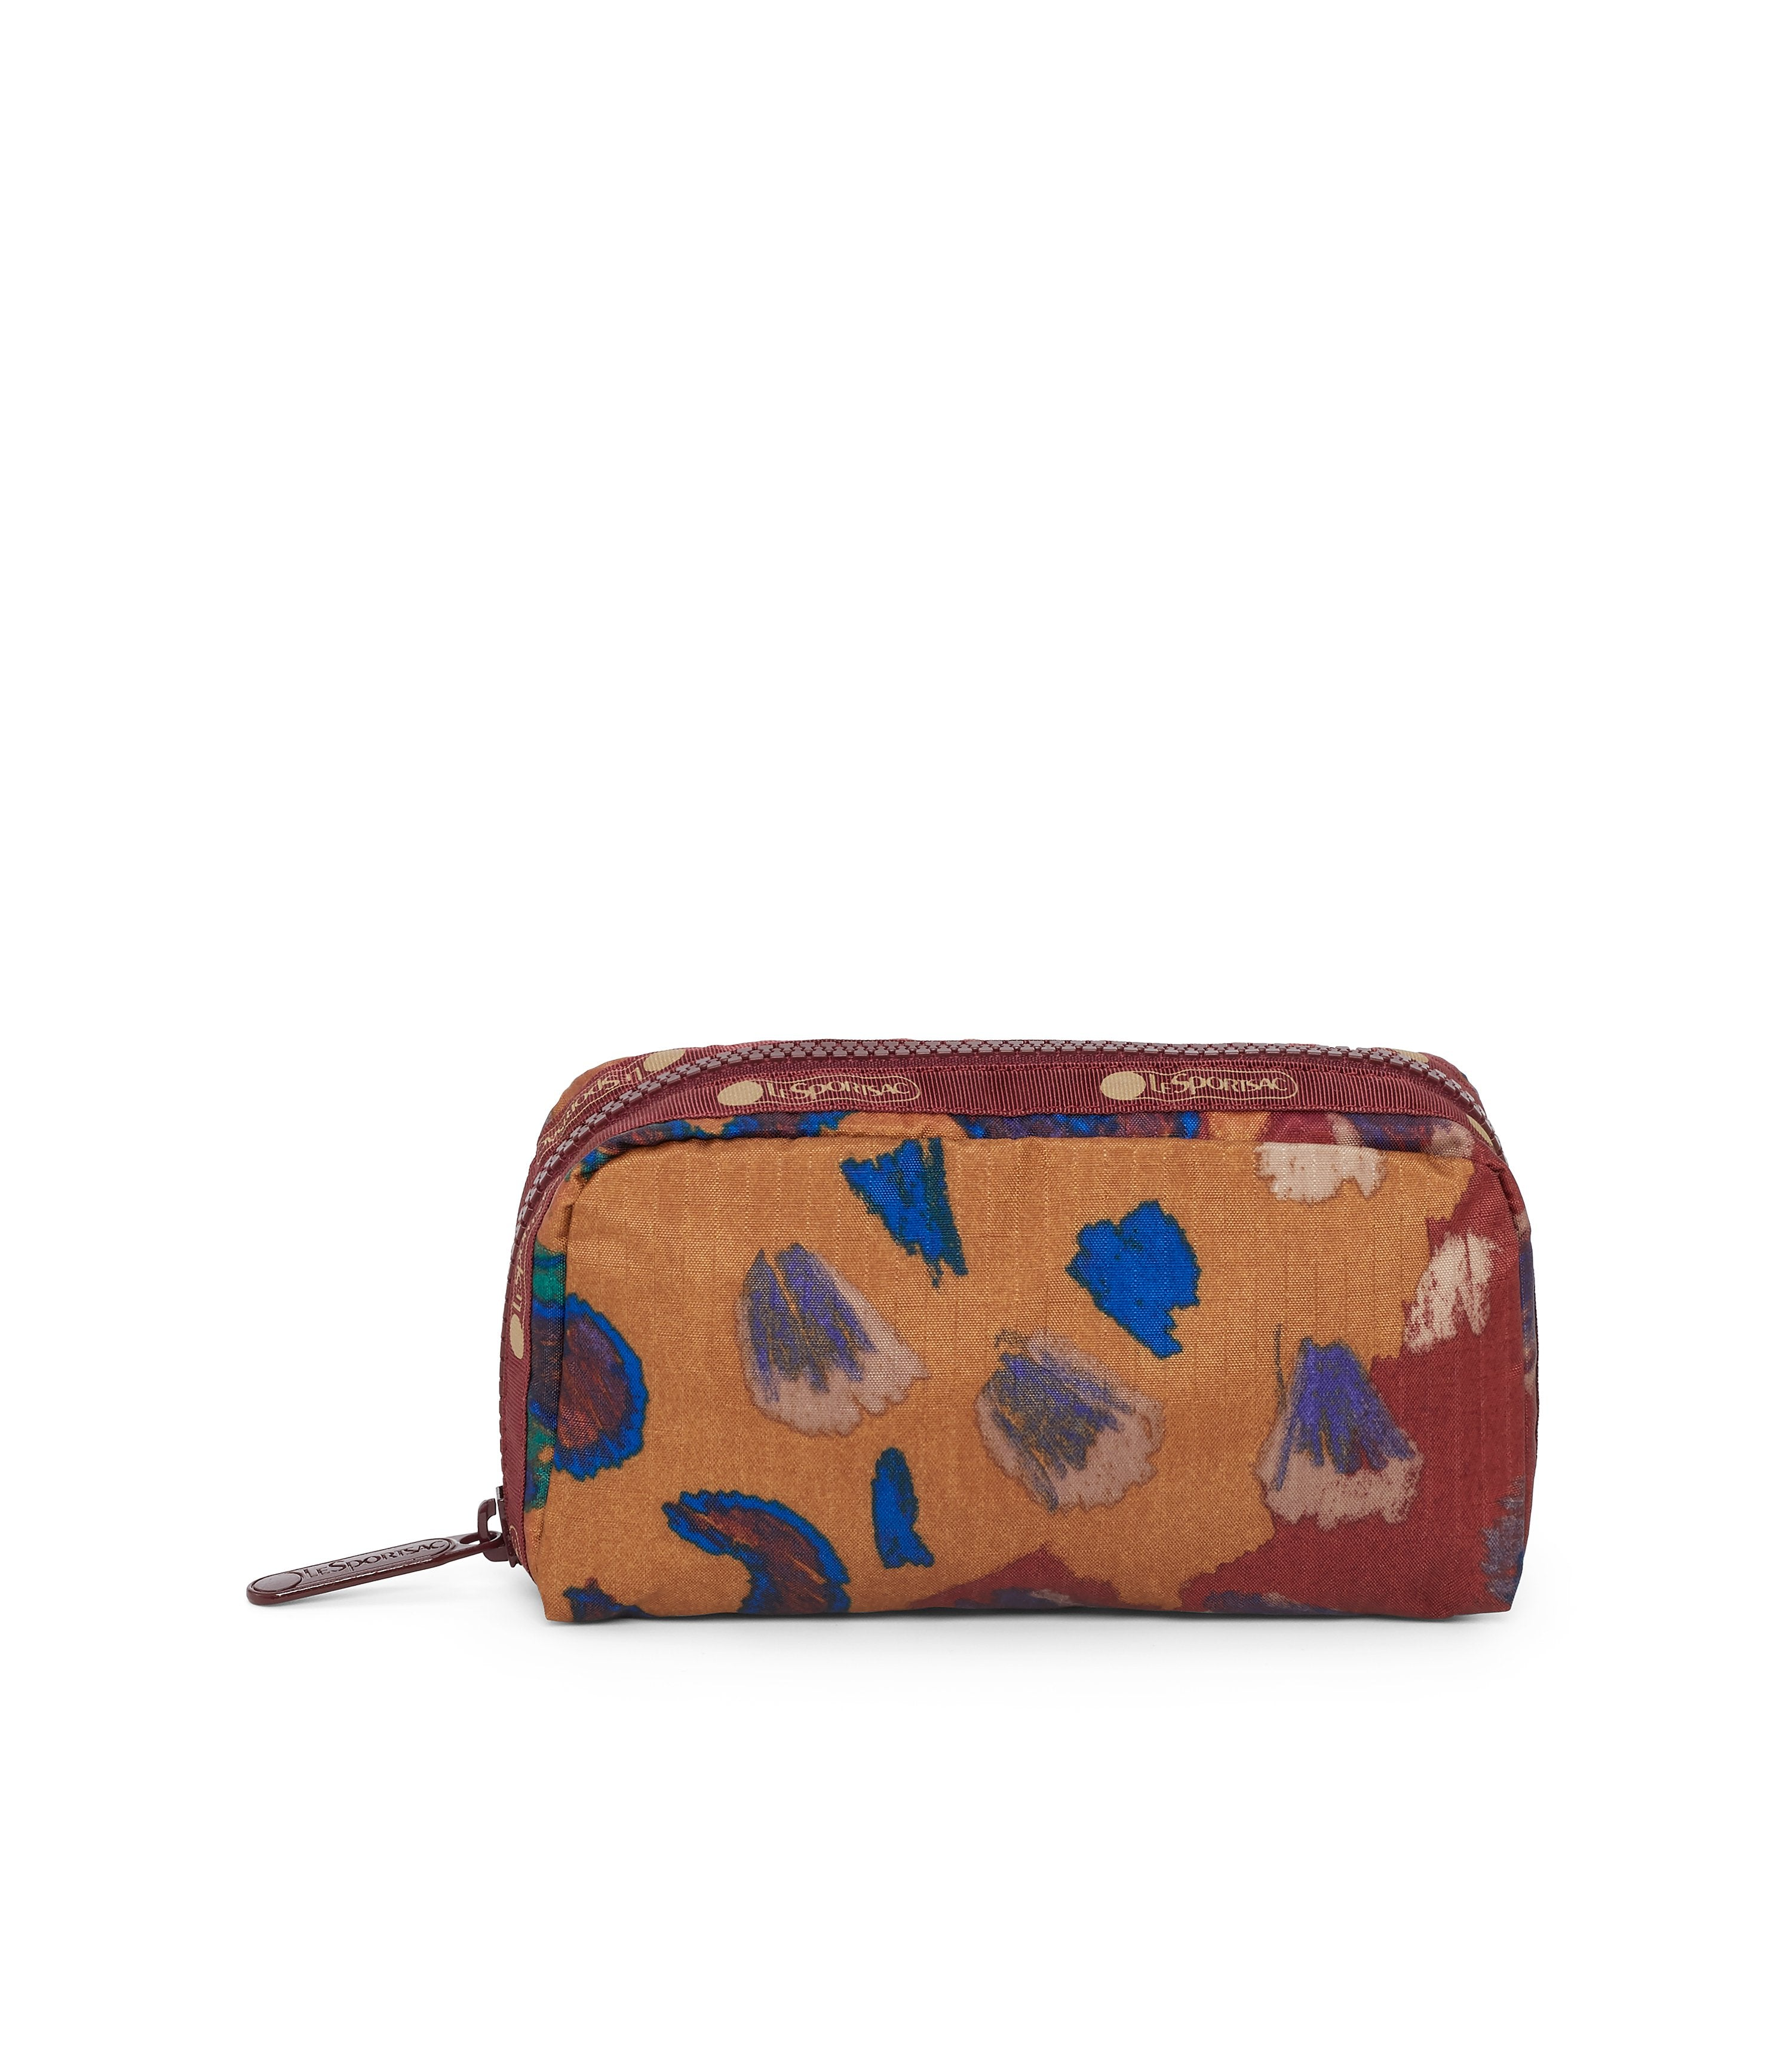 Rectangular Cosmetic, Accessories, Makeup and Cosmetic Bags, LeSportsac, Cheetaaah print